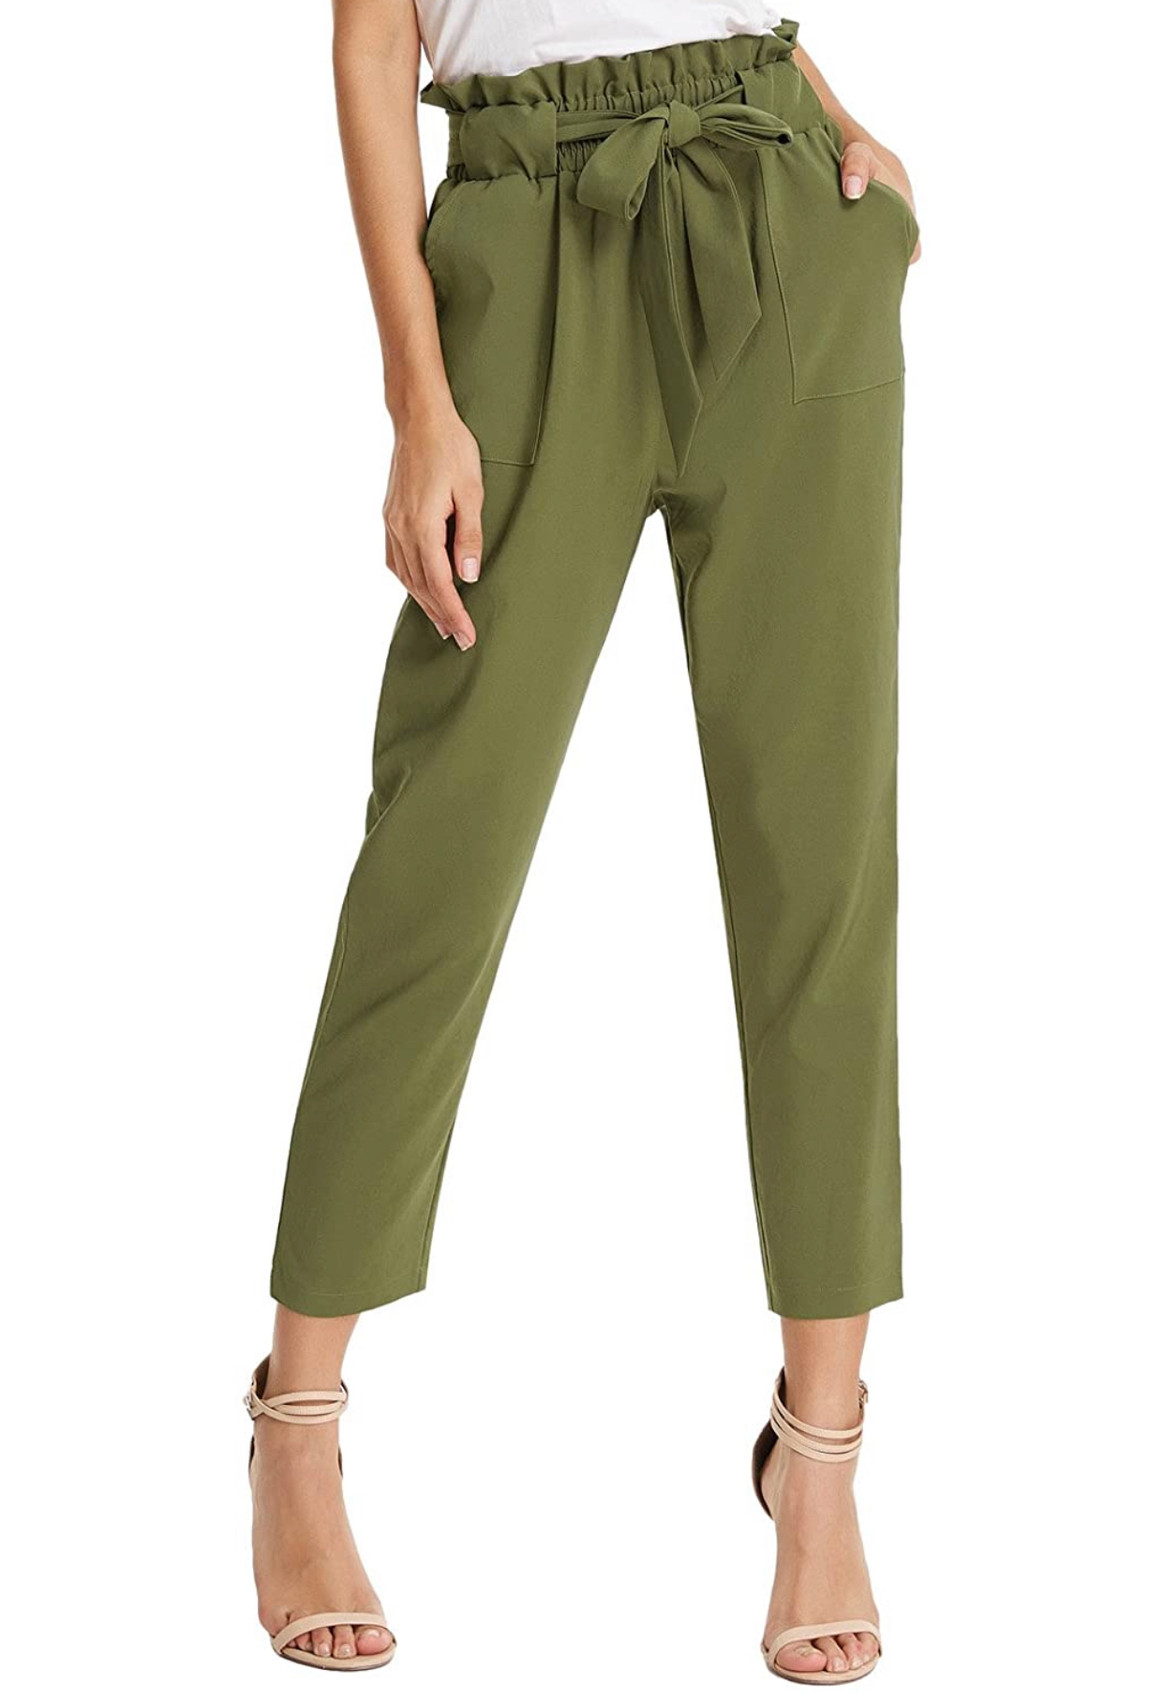 Army Green Grace Karin Paper Bag Waist Pants with pockets